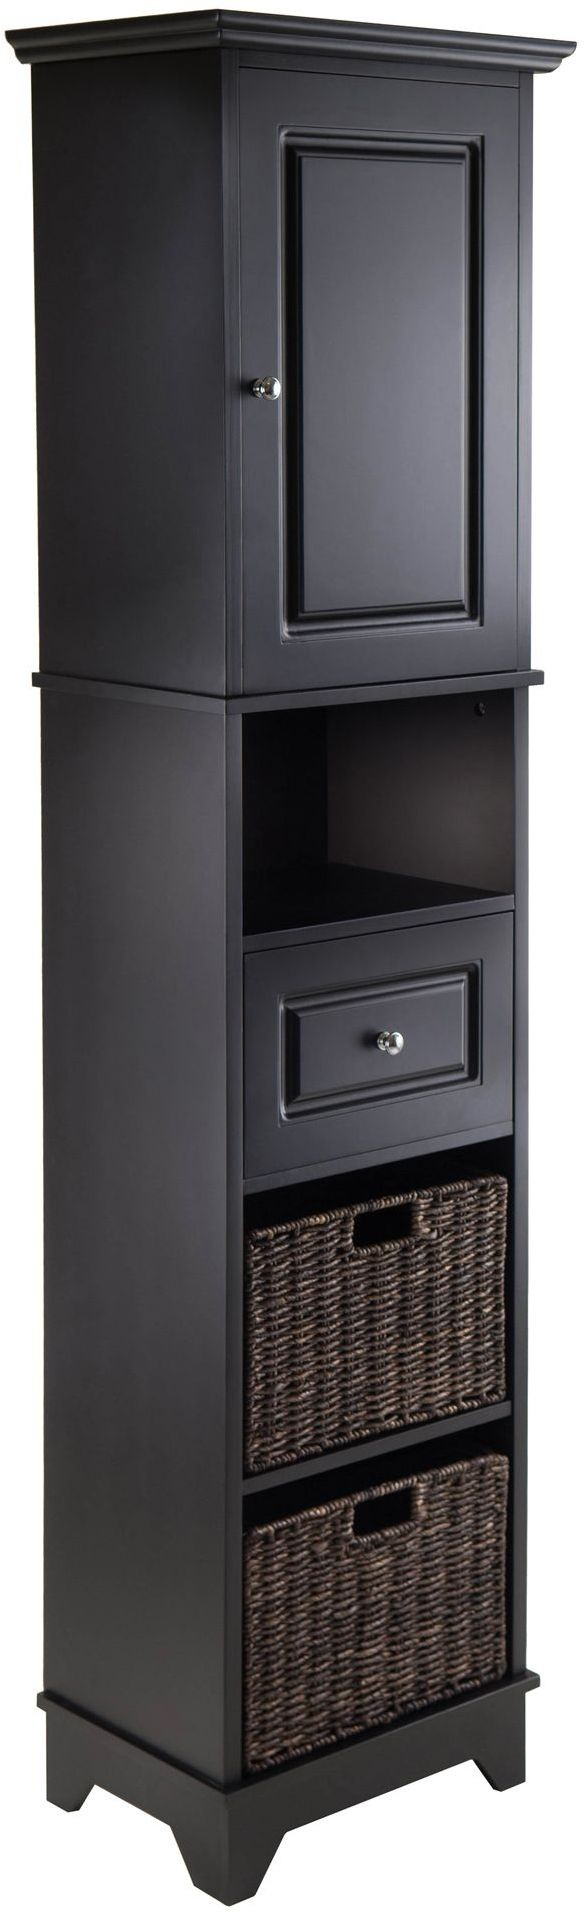 Basket Storage With Drawers Cabinets ~ Wyatt black drawer tall cabinet with baskets from